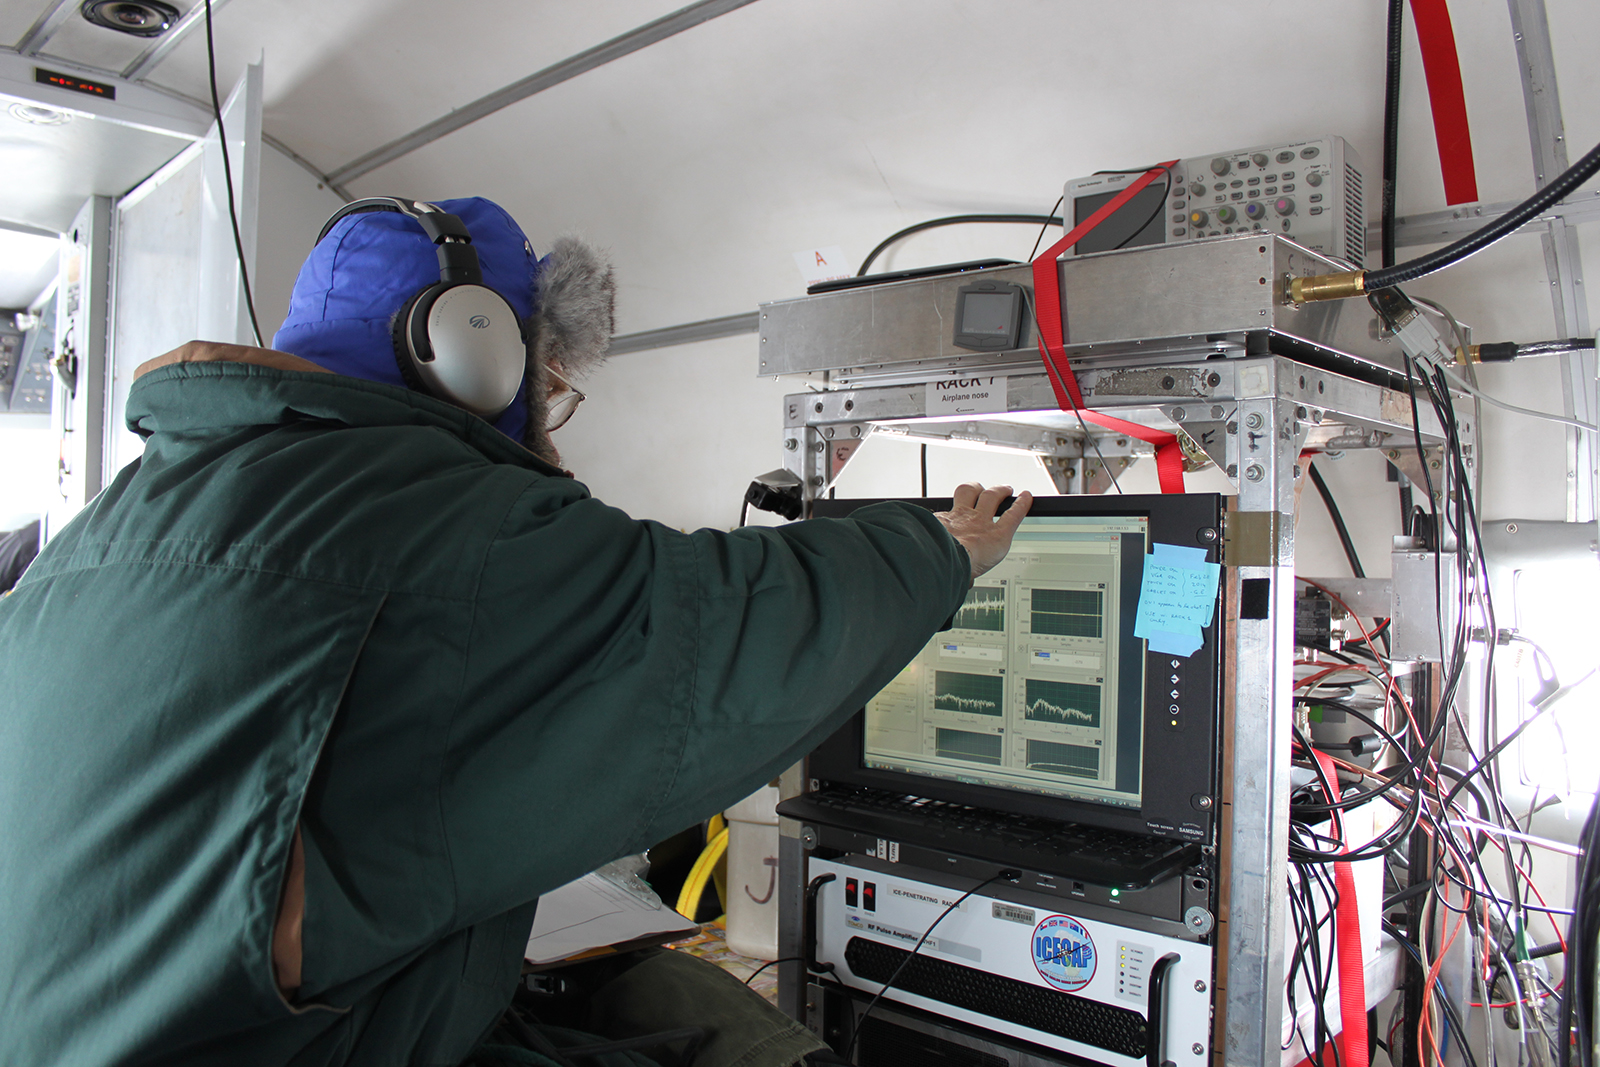 A UTIG research scientist operating the radar instruments inside a DC-3 aircraft during a survey flight over Devon Ice Cap. Photo credit: Anja Rutishauser